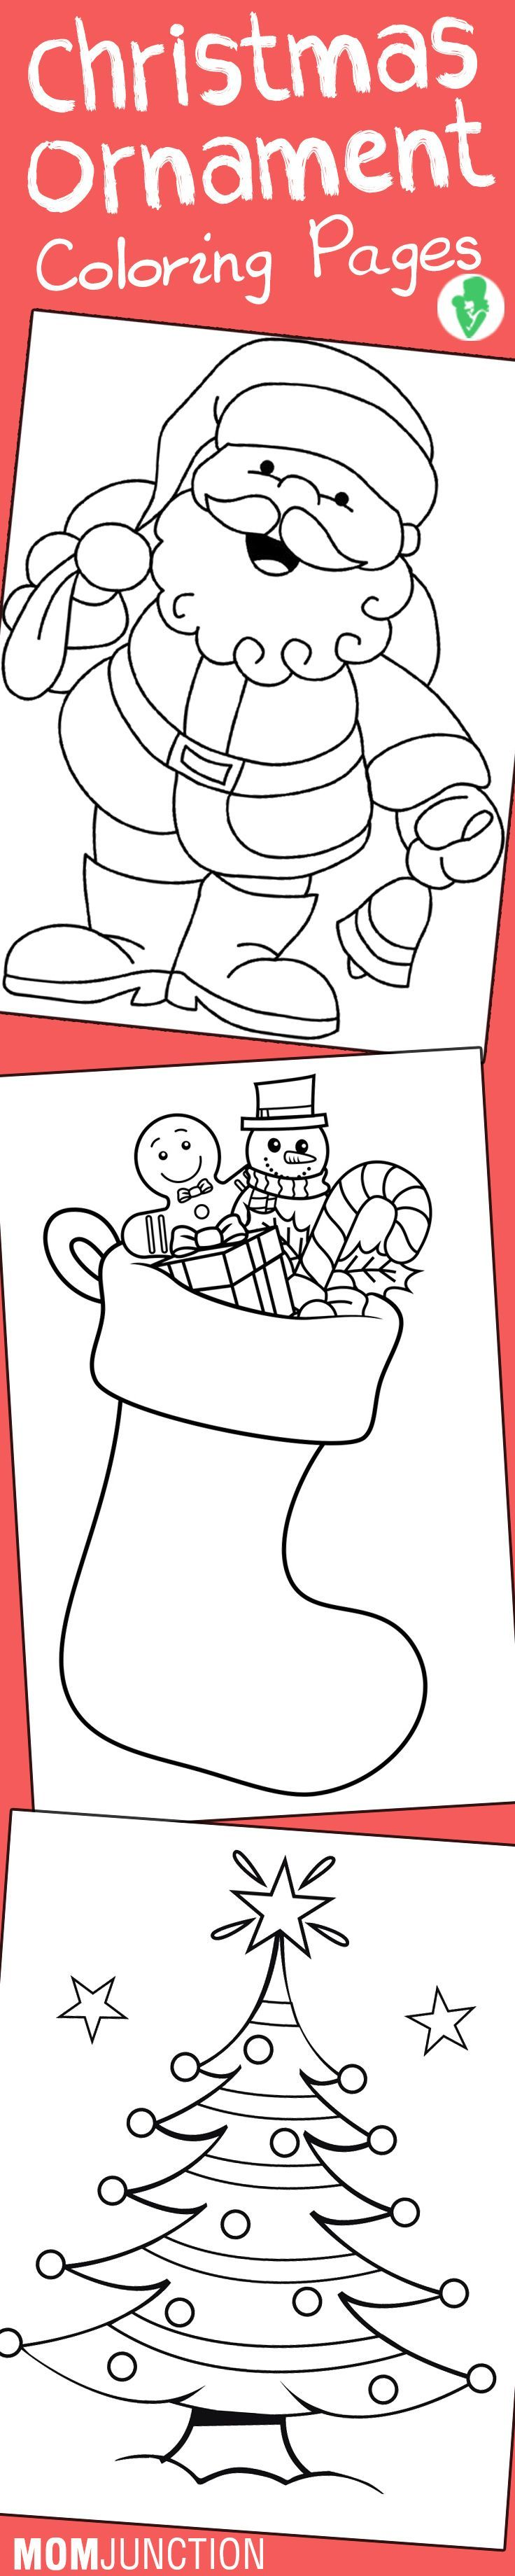 Free online anatomy coloring book - Top 10 Free Printable Christmas Ornament Coloring Pages Online